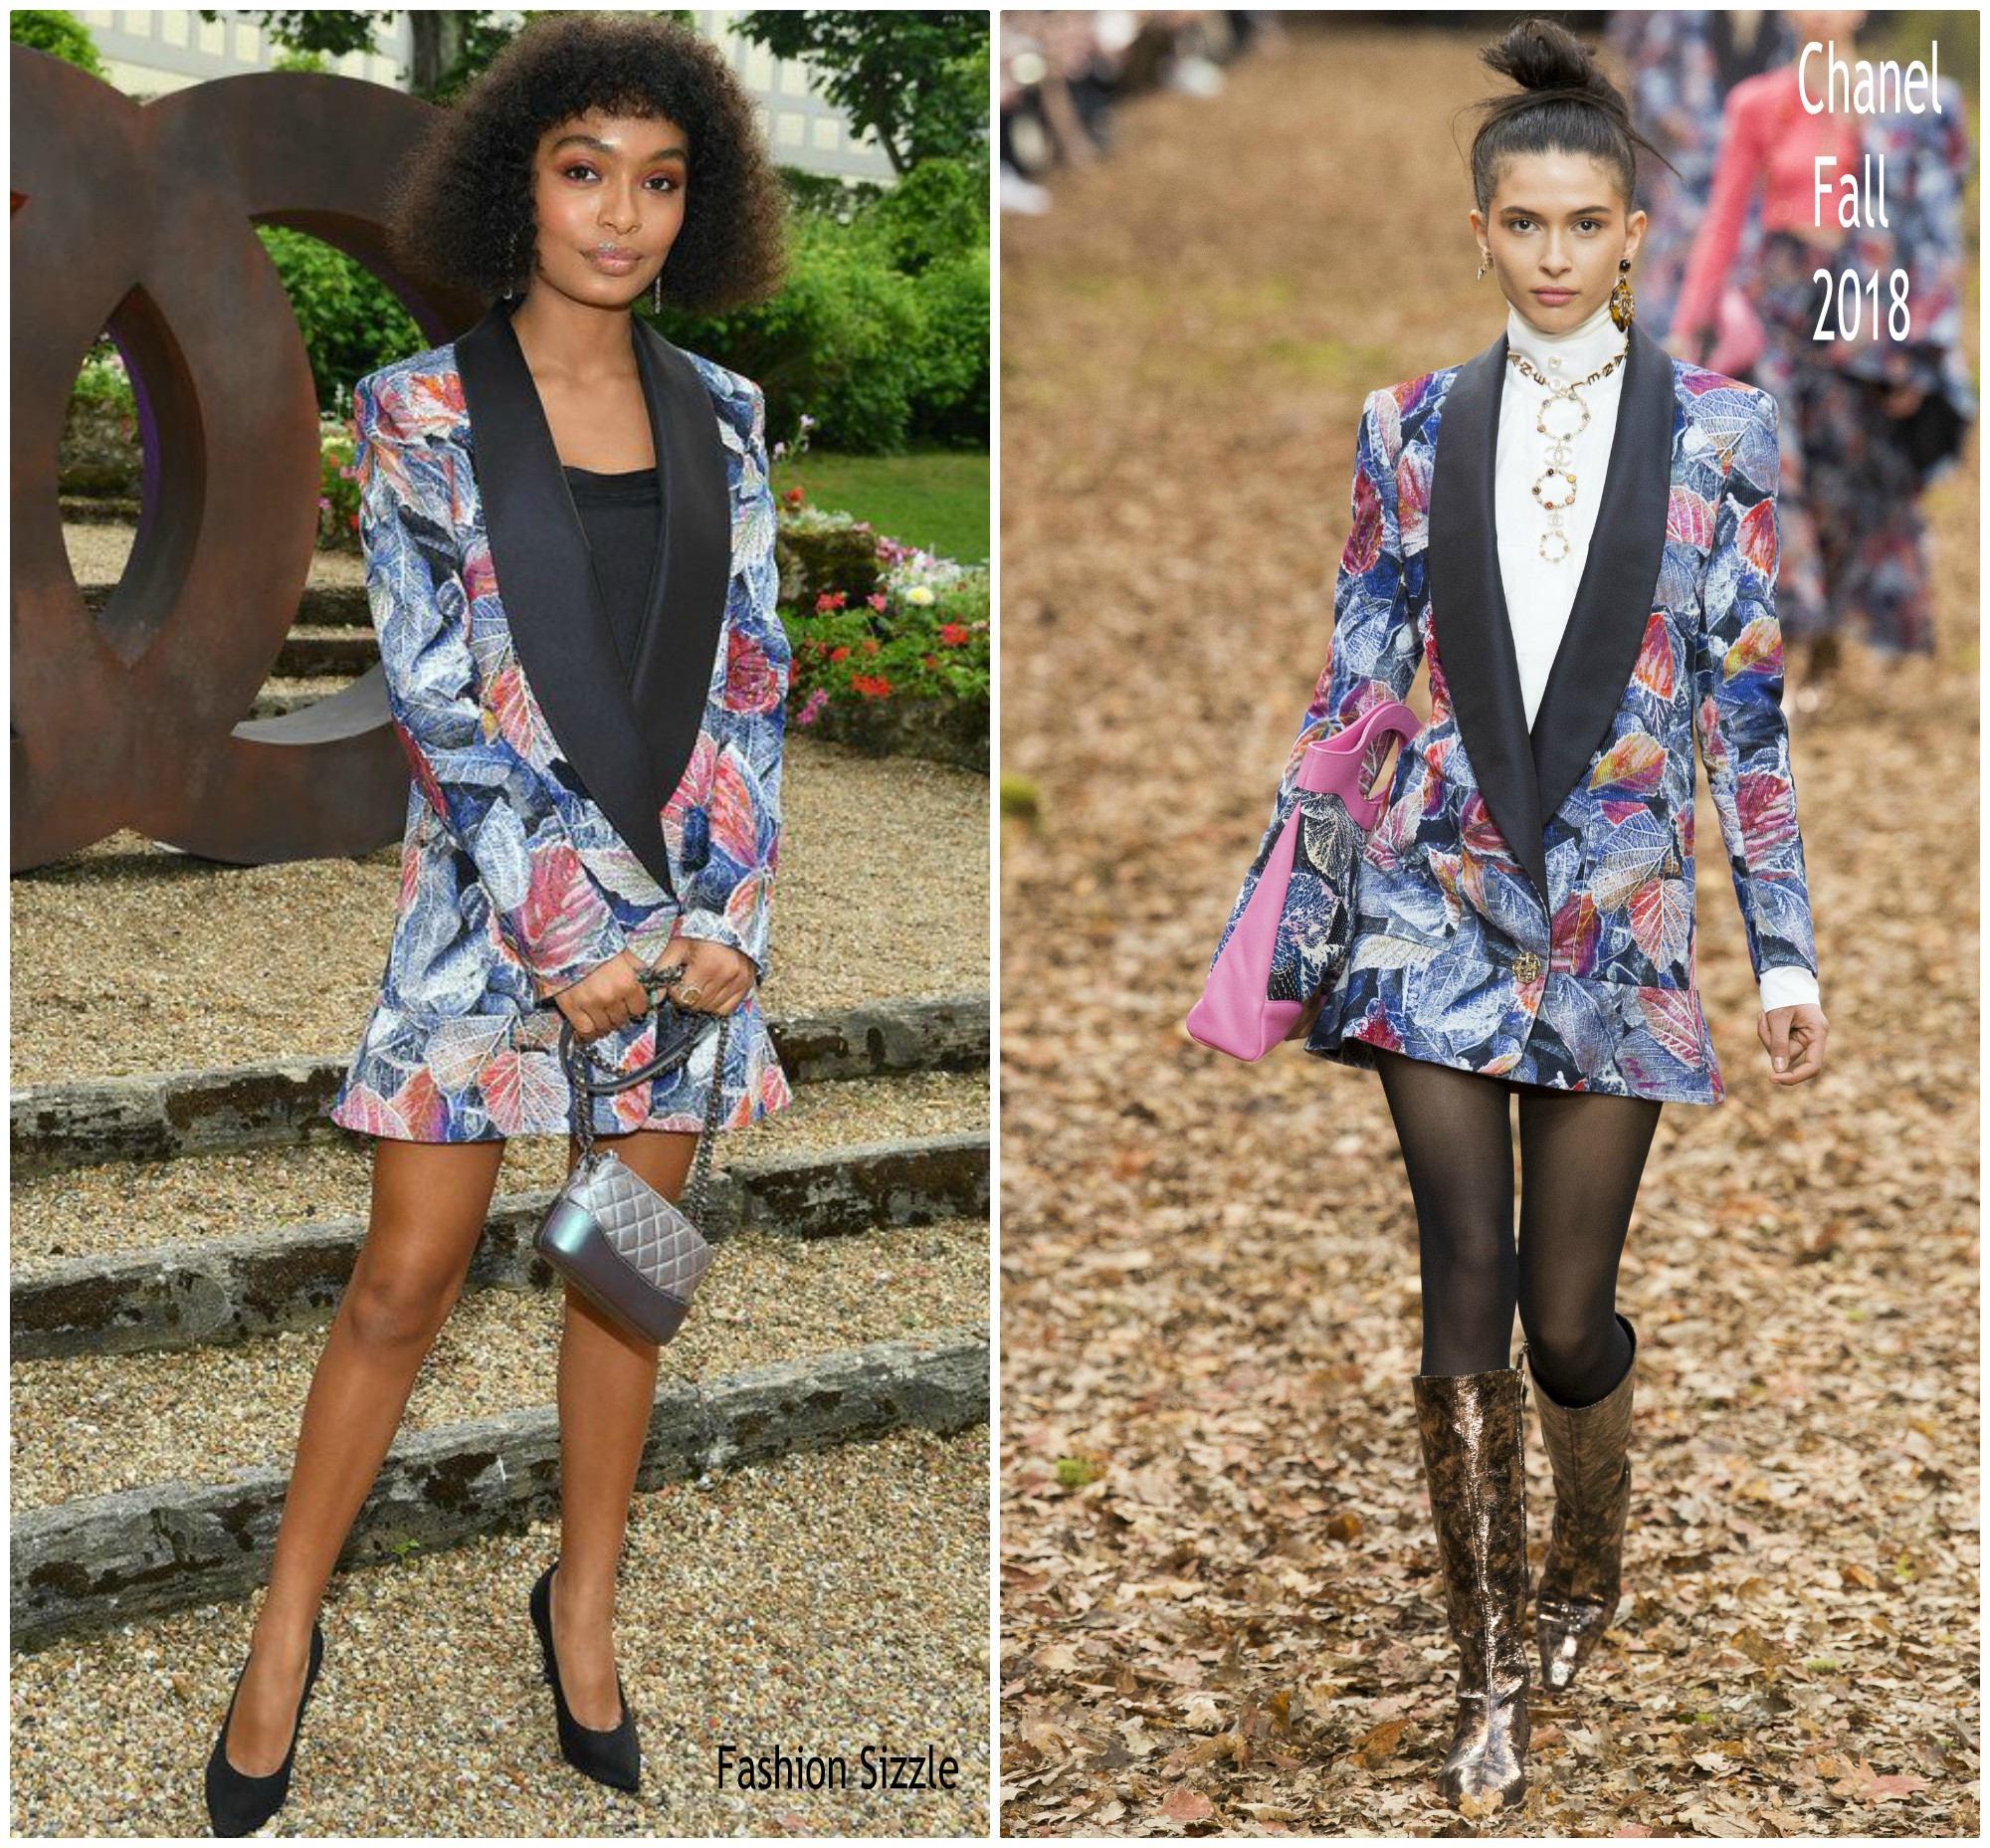 yara-shahidi-in-chanel-les-eaux-de-chanel-launch-photocall